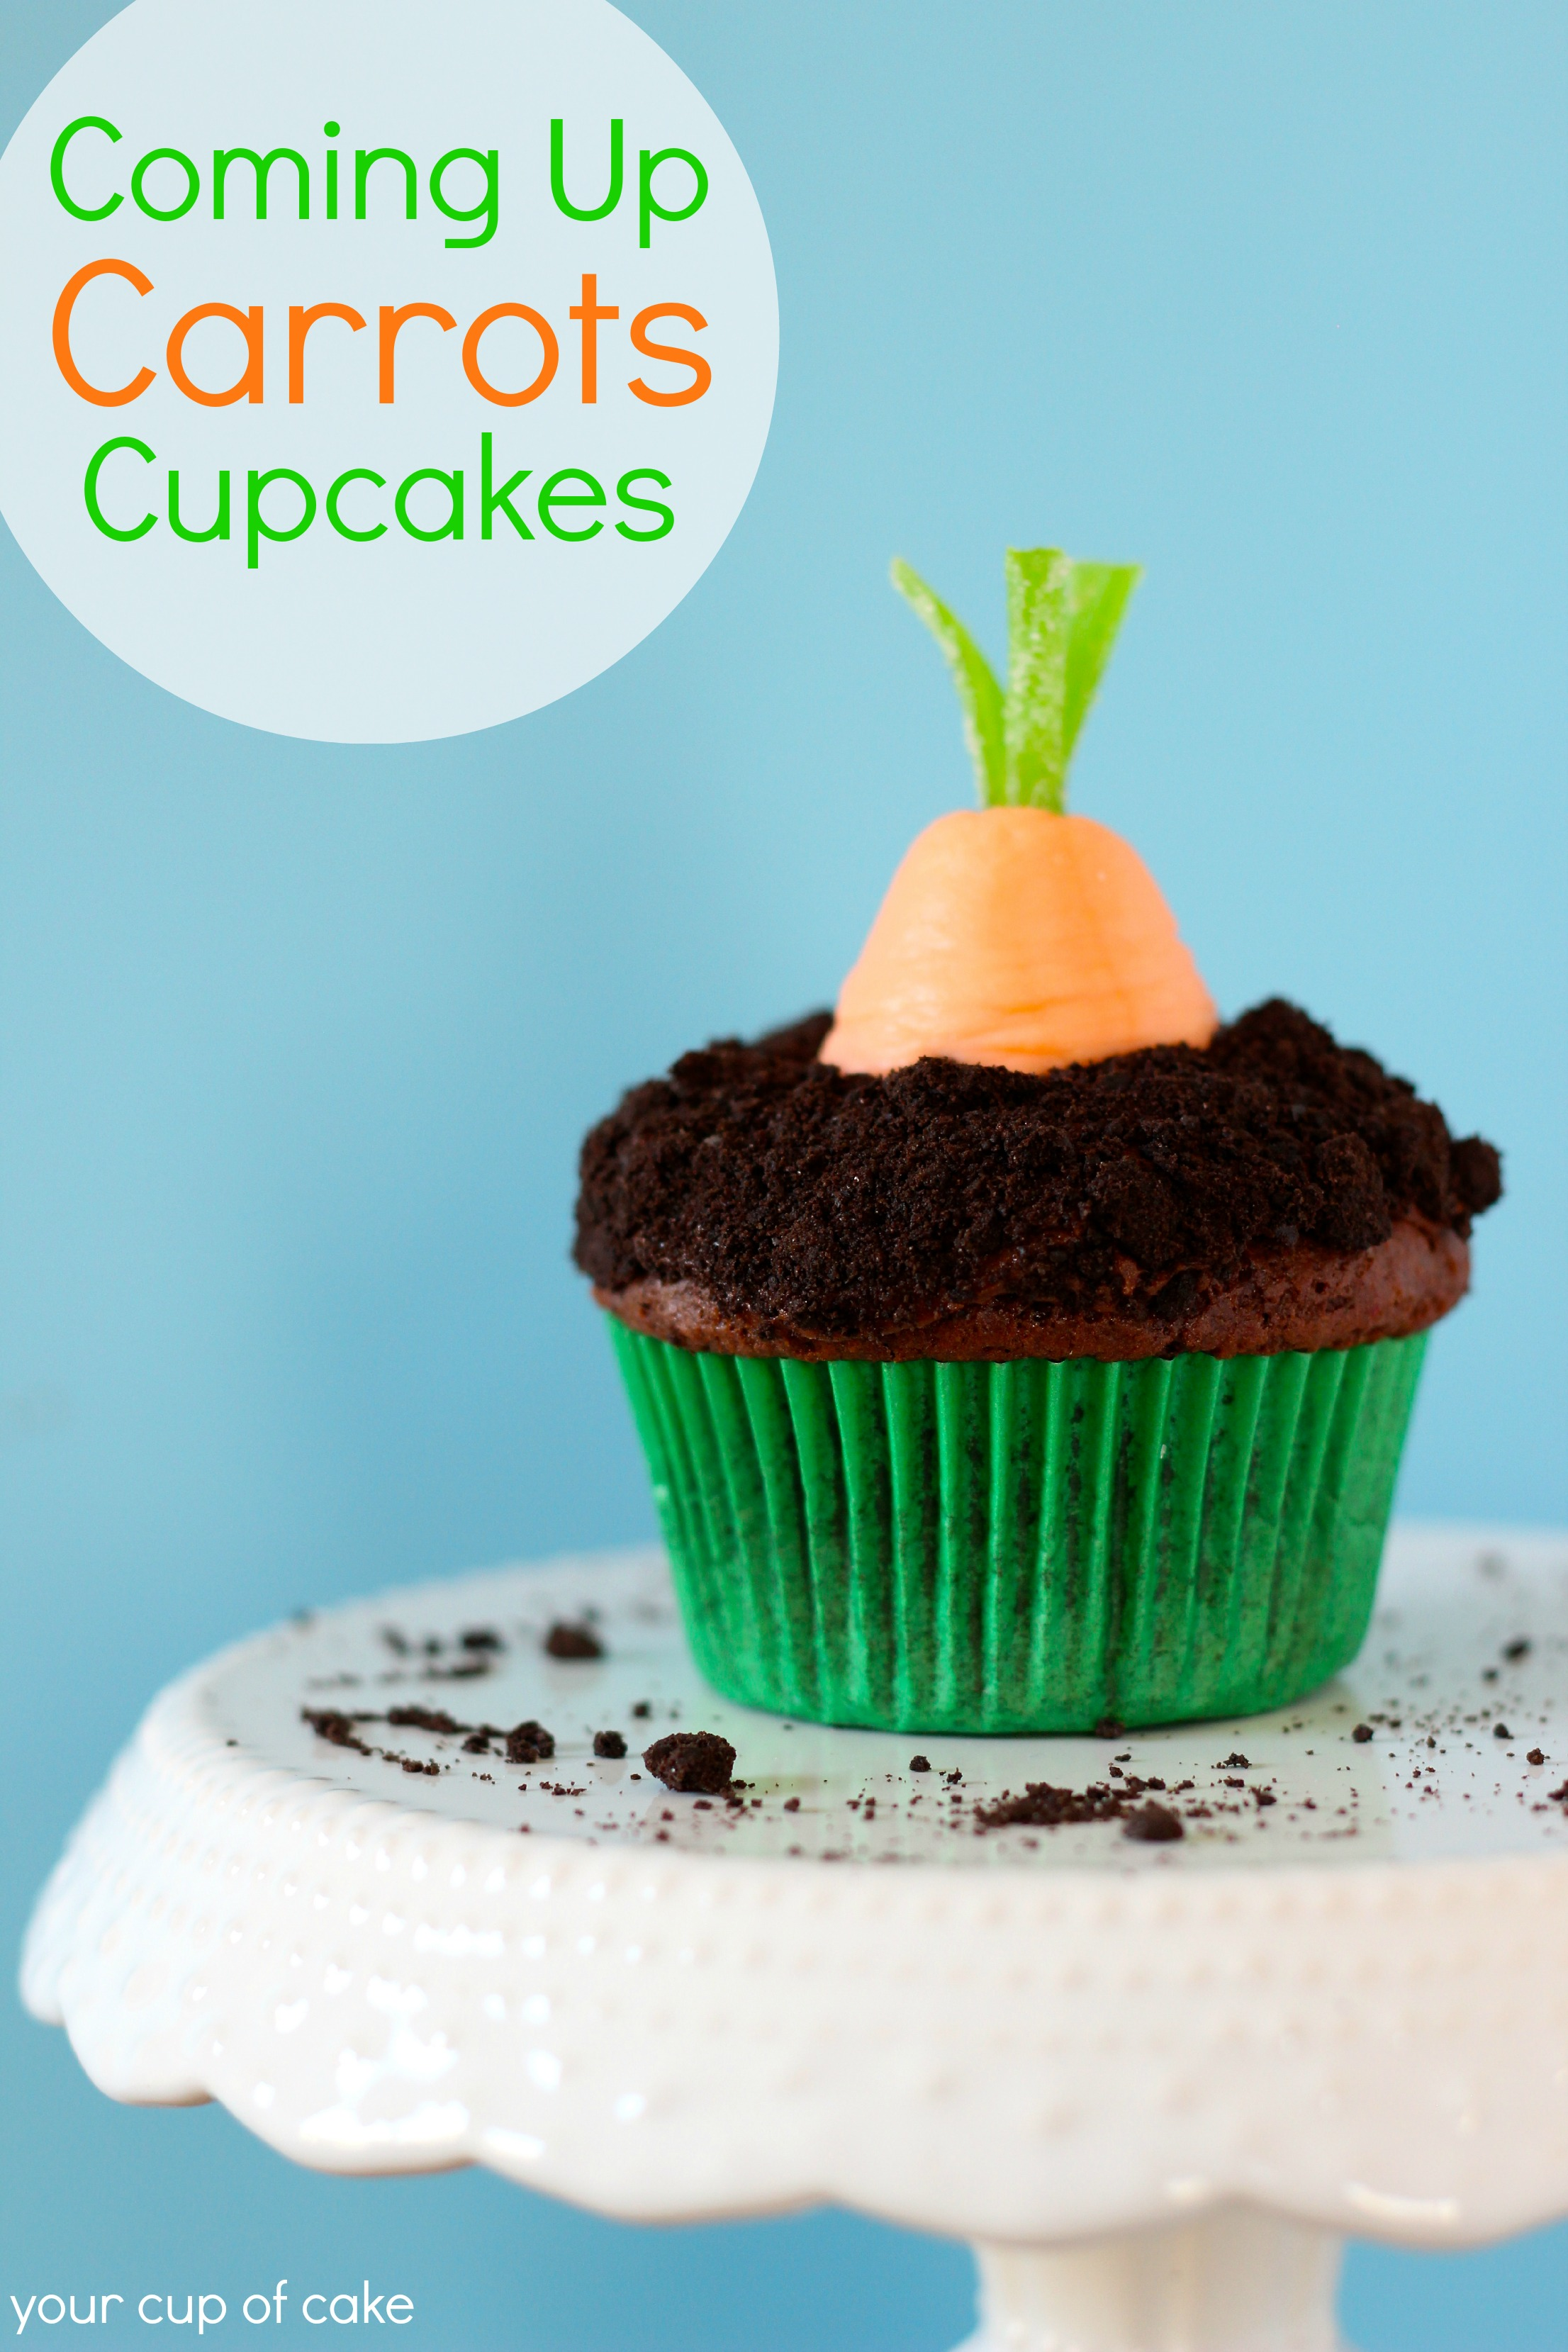 Coming Up Carrots Cupcakes - Your Cup of Cake